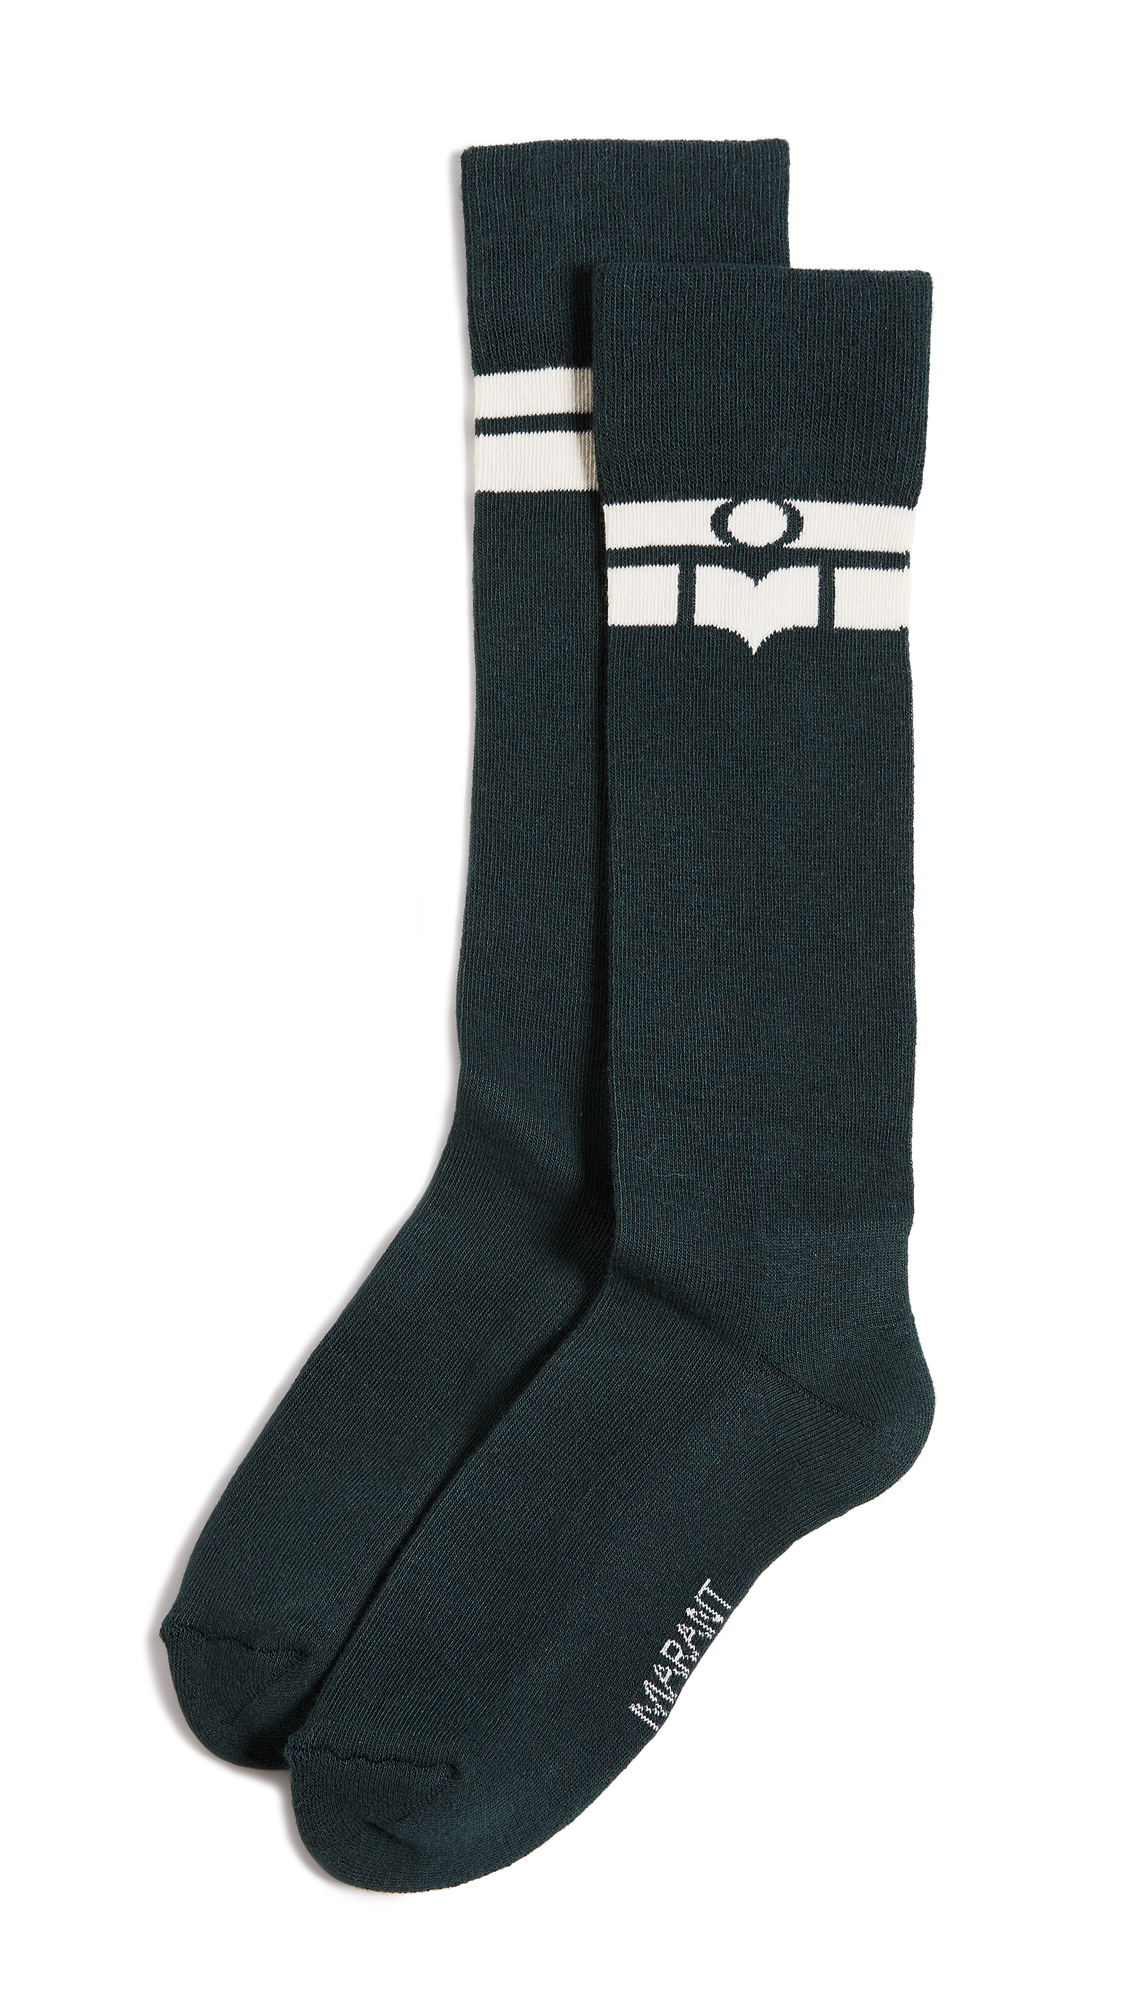 Isabel Marant Vibe Marant's Socks In Dark Green